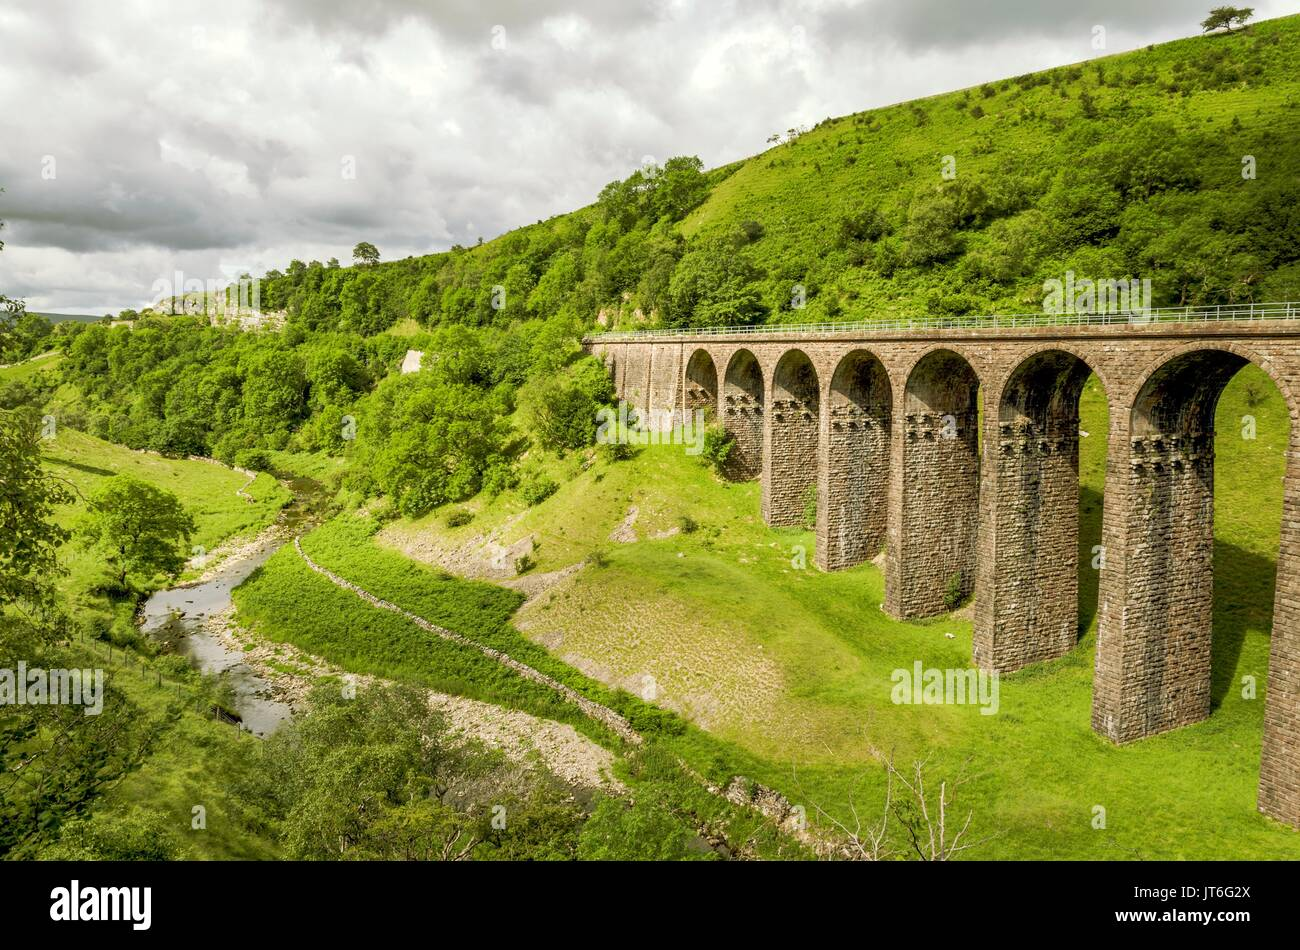 Oblique view of a disused railway viaduct in Smardale. - Stock Image